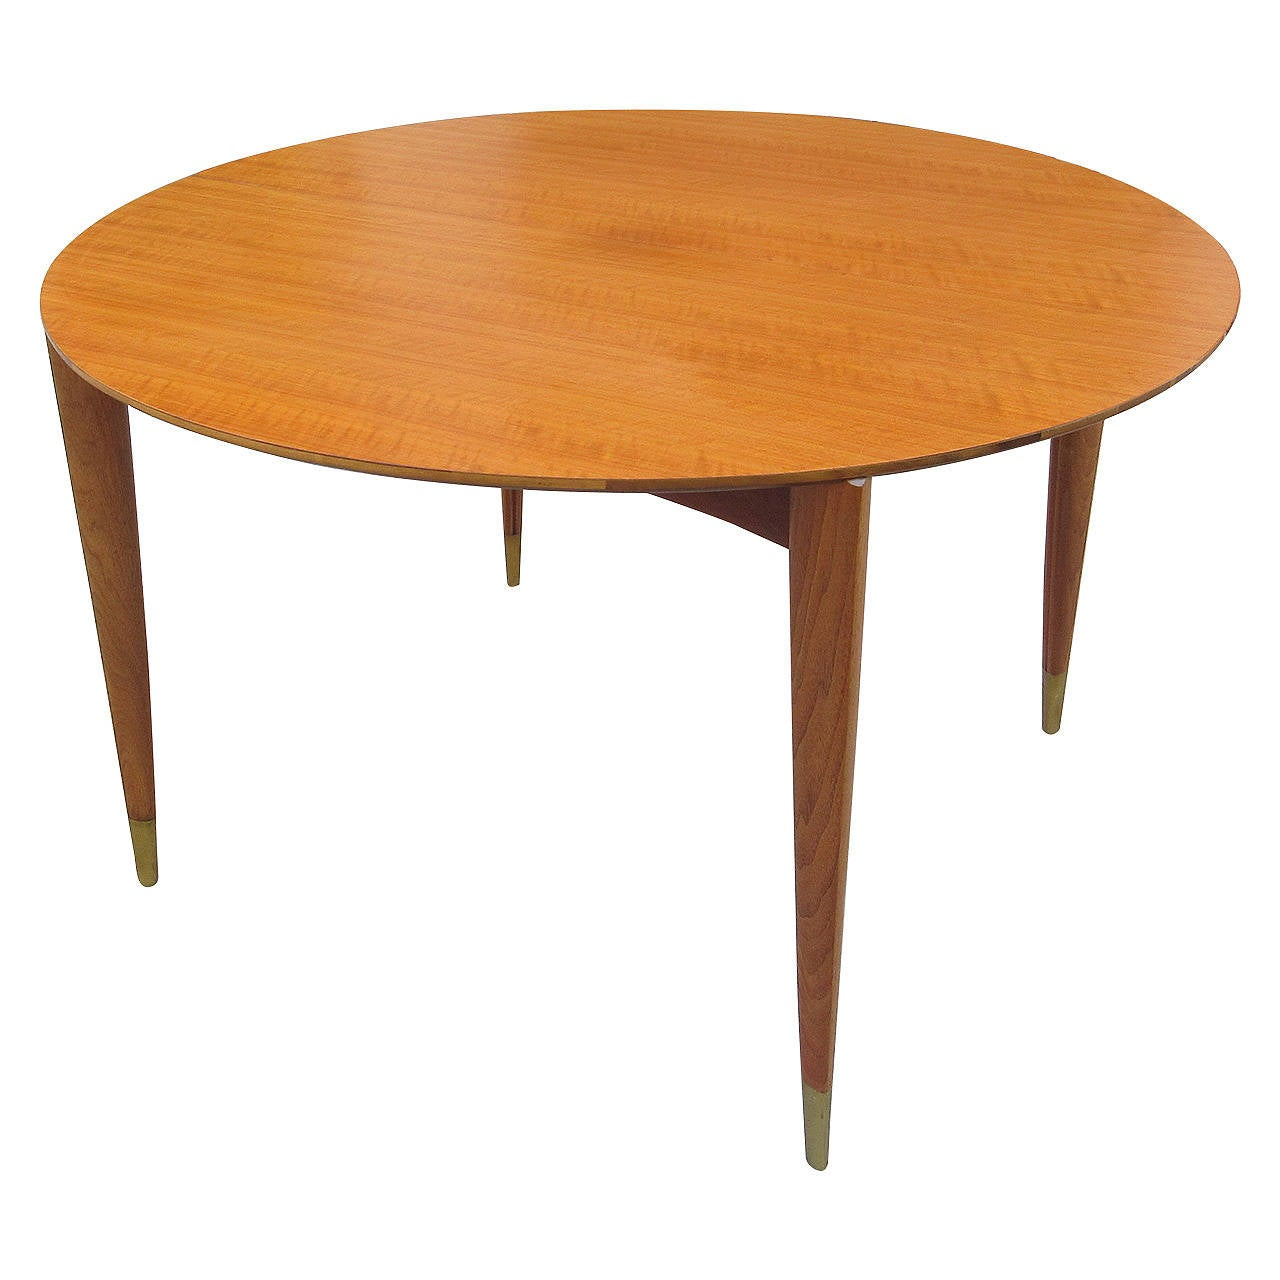 Gio ponti for m singer and sons dining table at 1stdibs for M s dining room tables